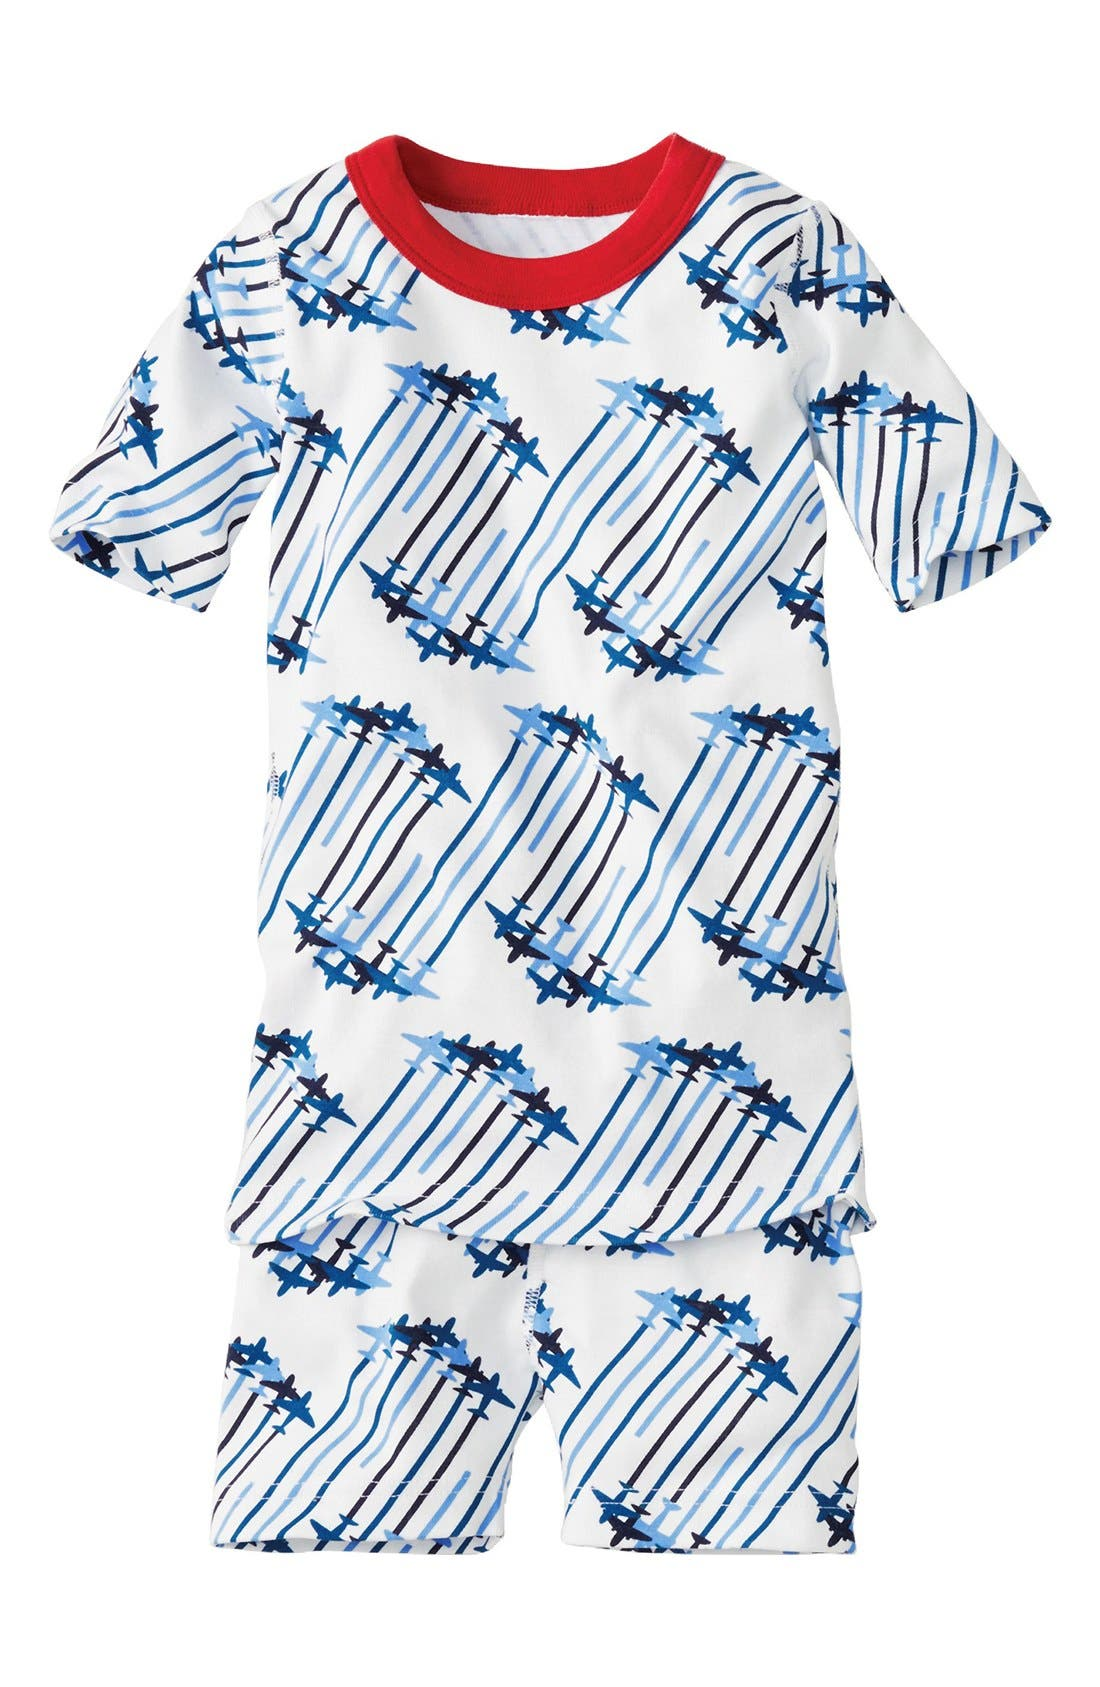 Alternate Image 1 Selected - Hanna Andersson Organic Cotton Two-Piece Fitted Pajamas (Toddler Boys, Little Boys & Big Boys)